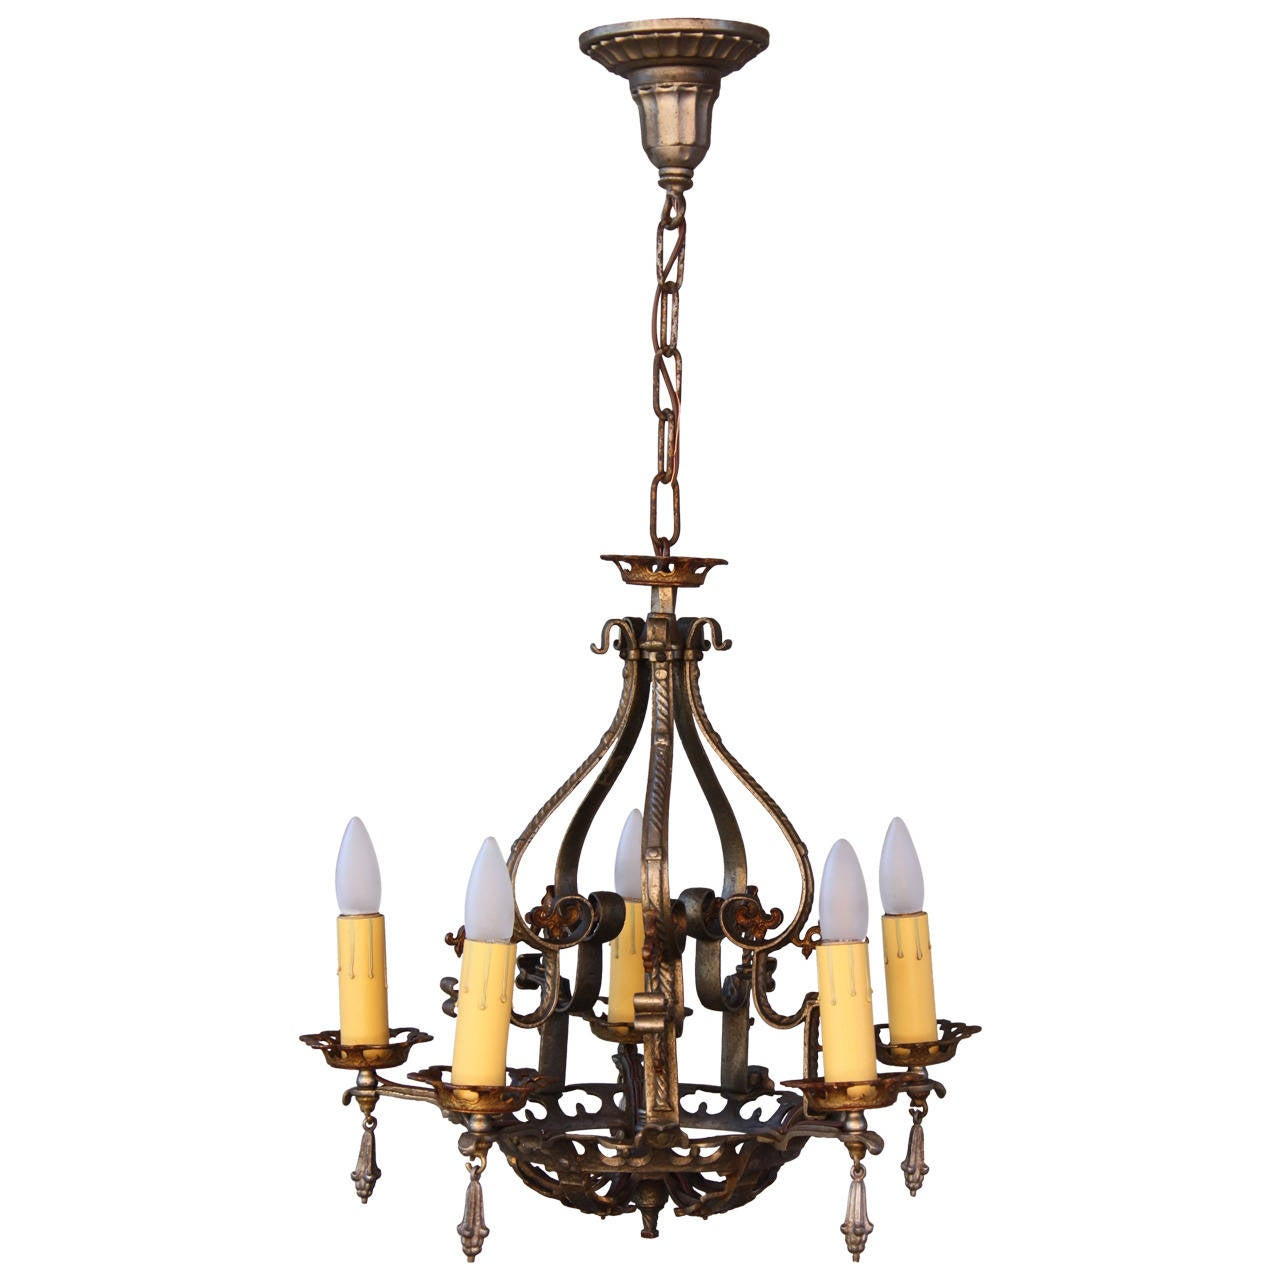 1920 39 s spanish revival chandelier at 1stdibs for Spanish revival lighting fixtures